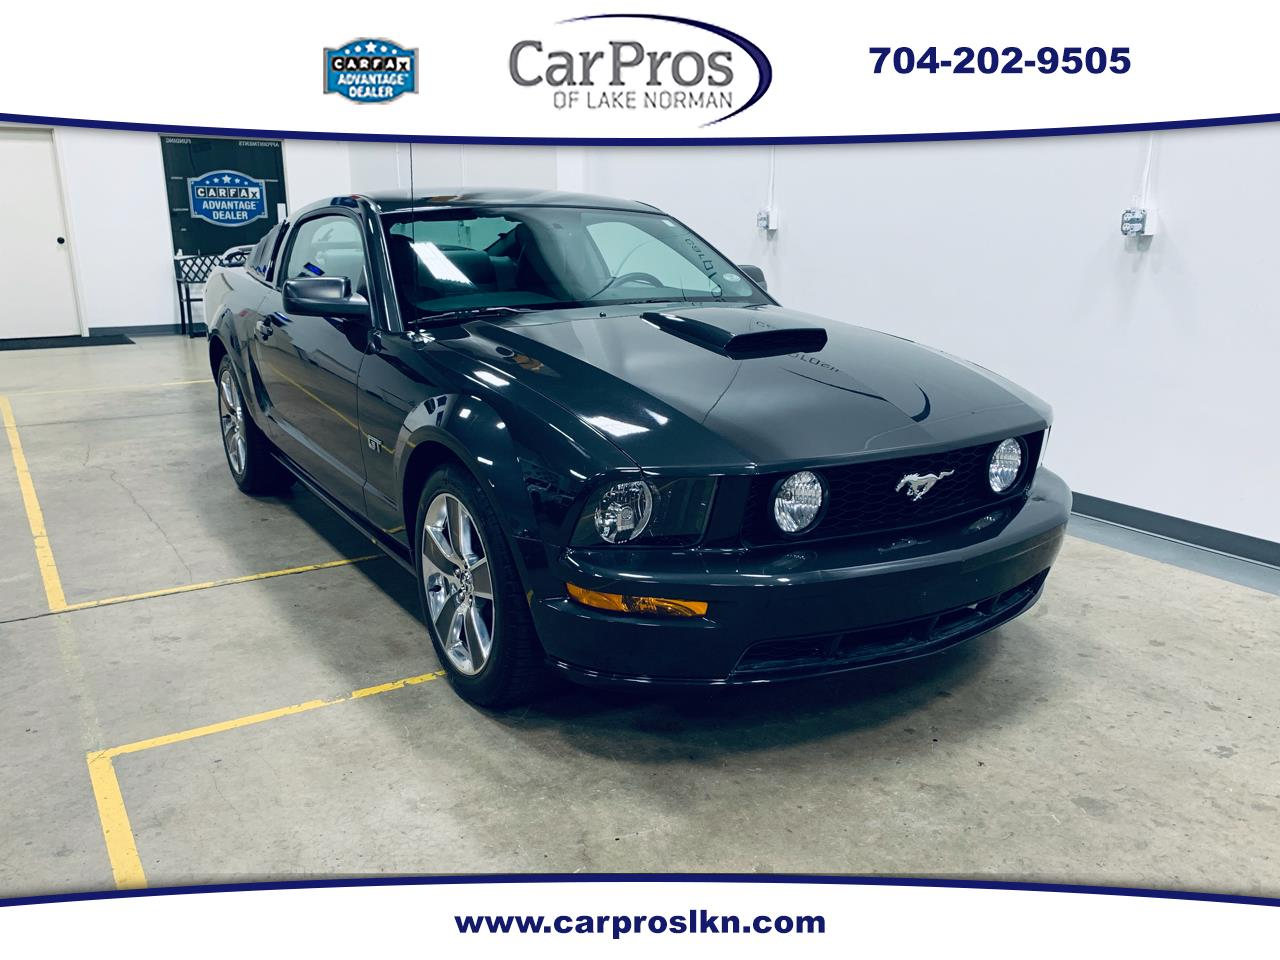 2008 Ford Mustang 2dr Cpe GT Deluxe